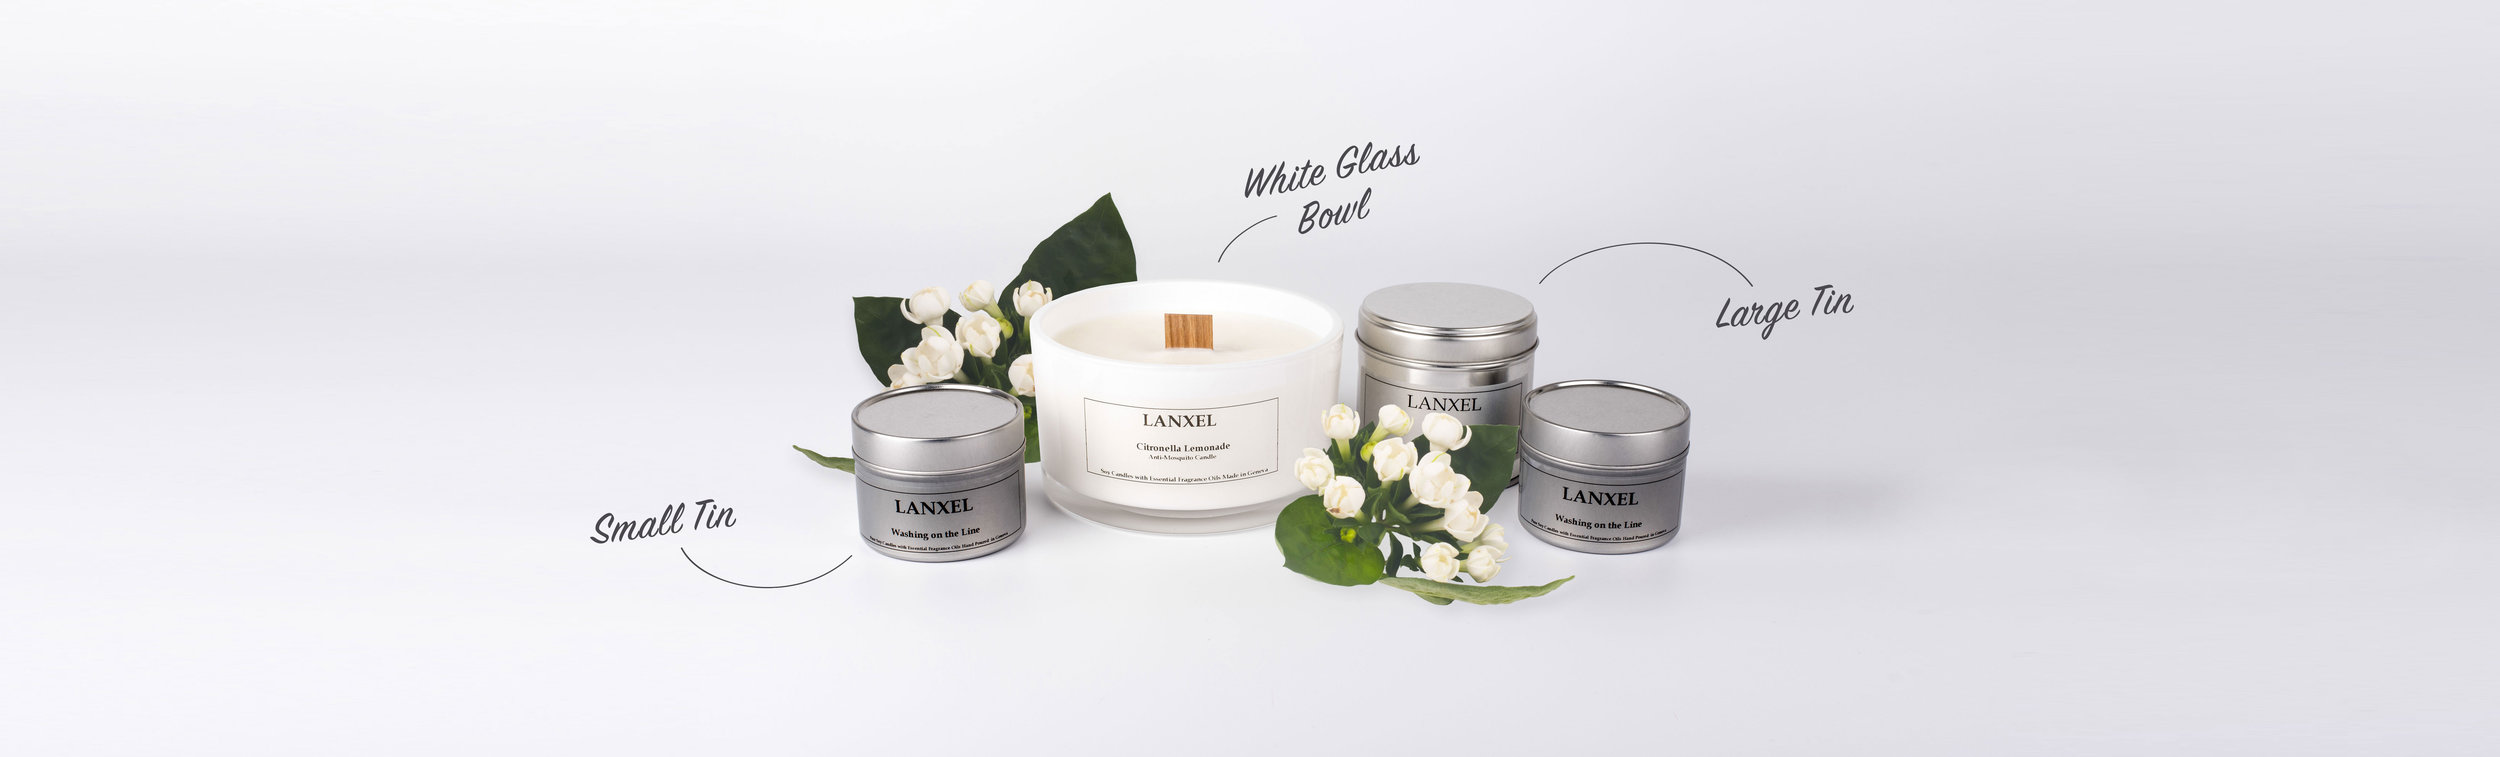 lanxel-candles-collection.jpg